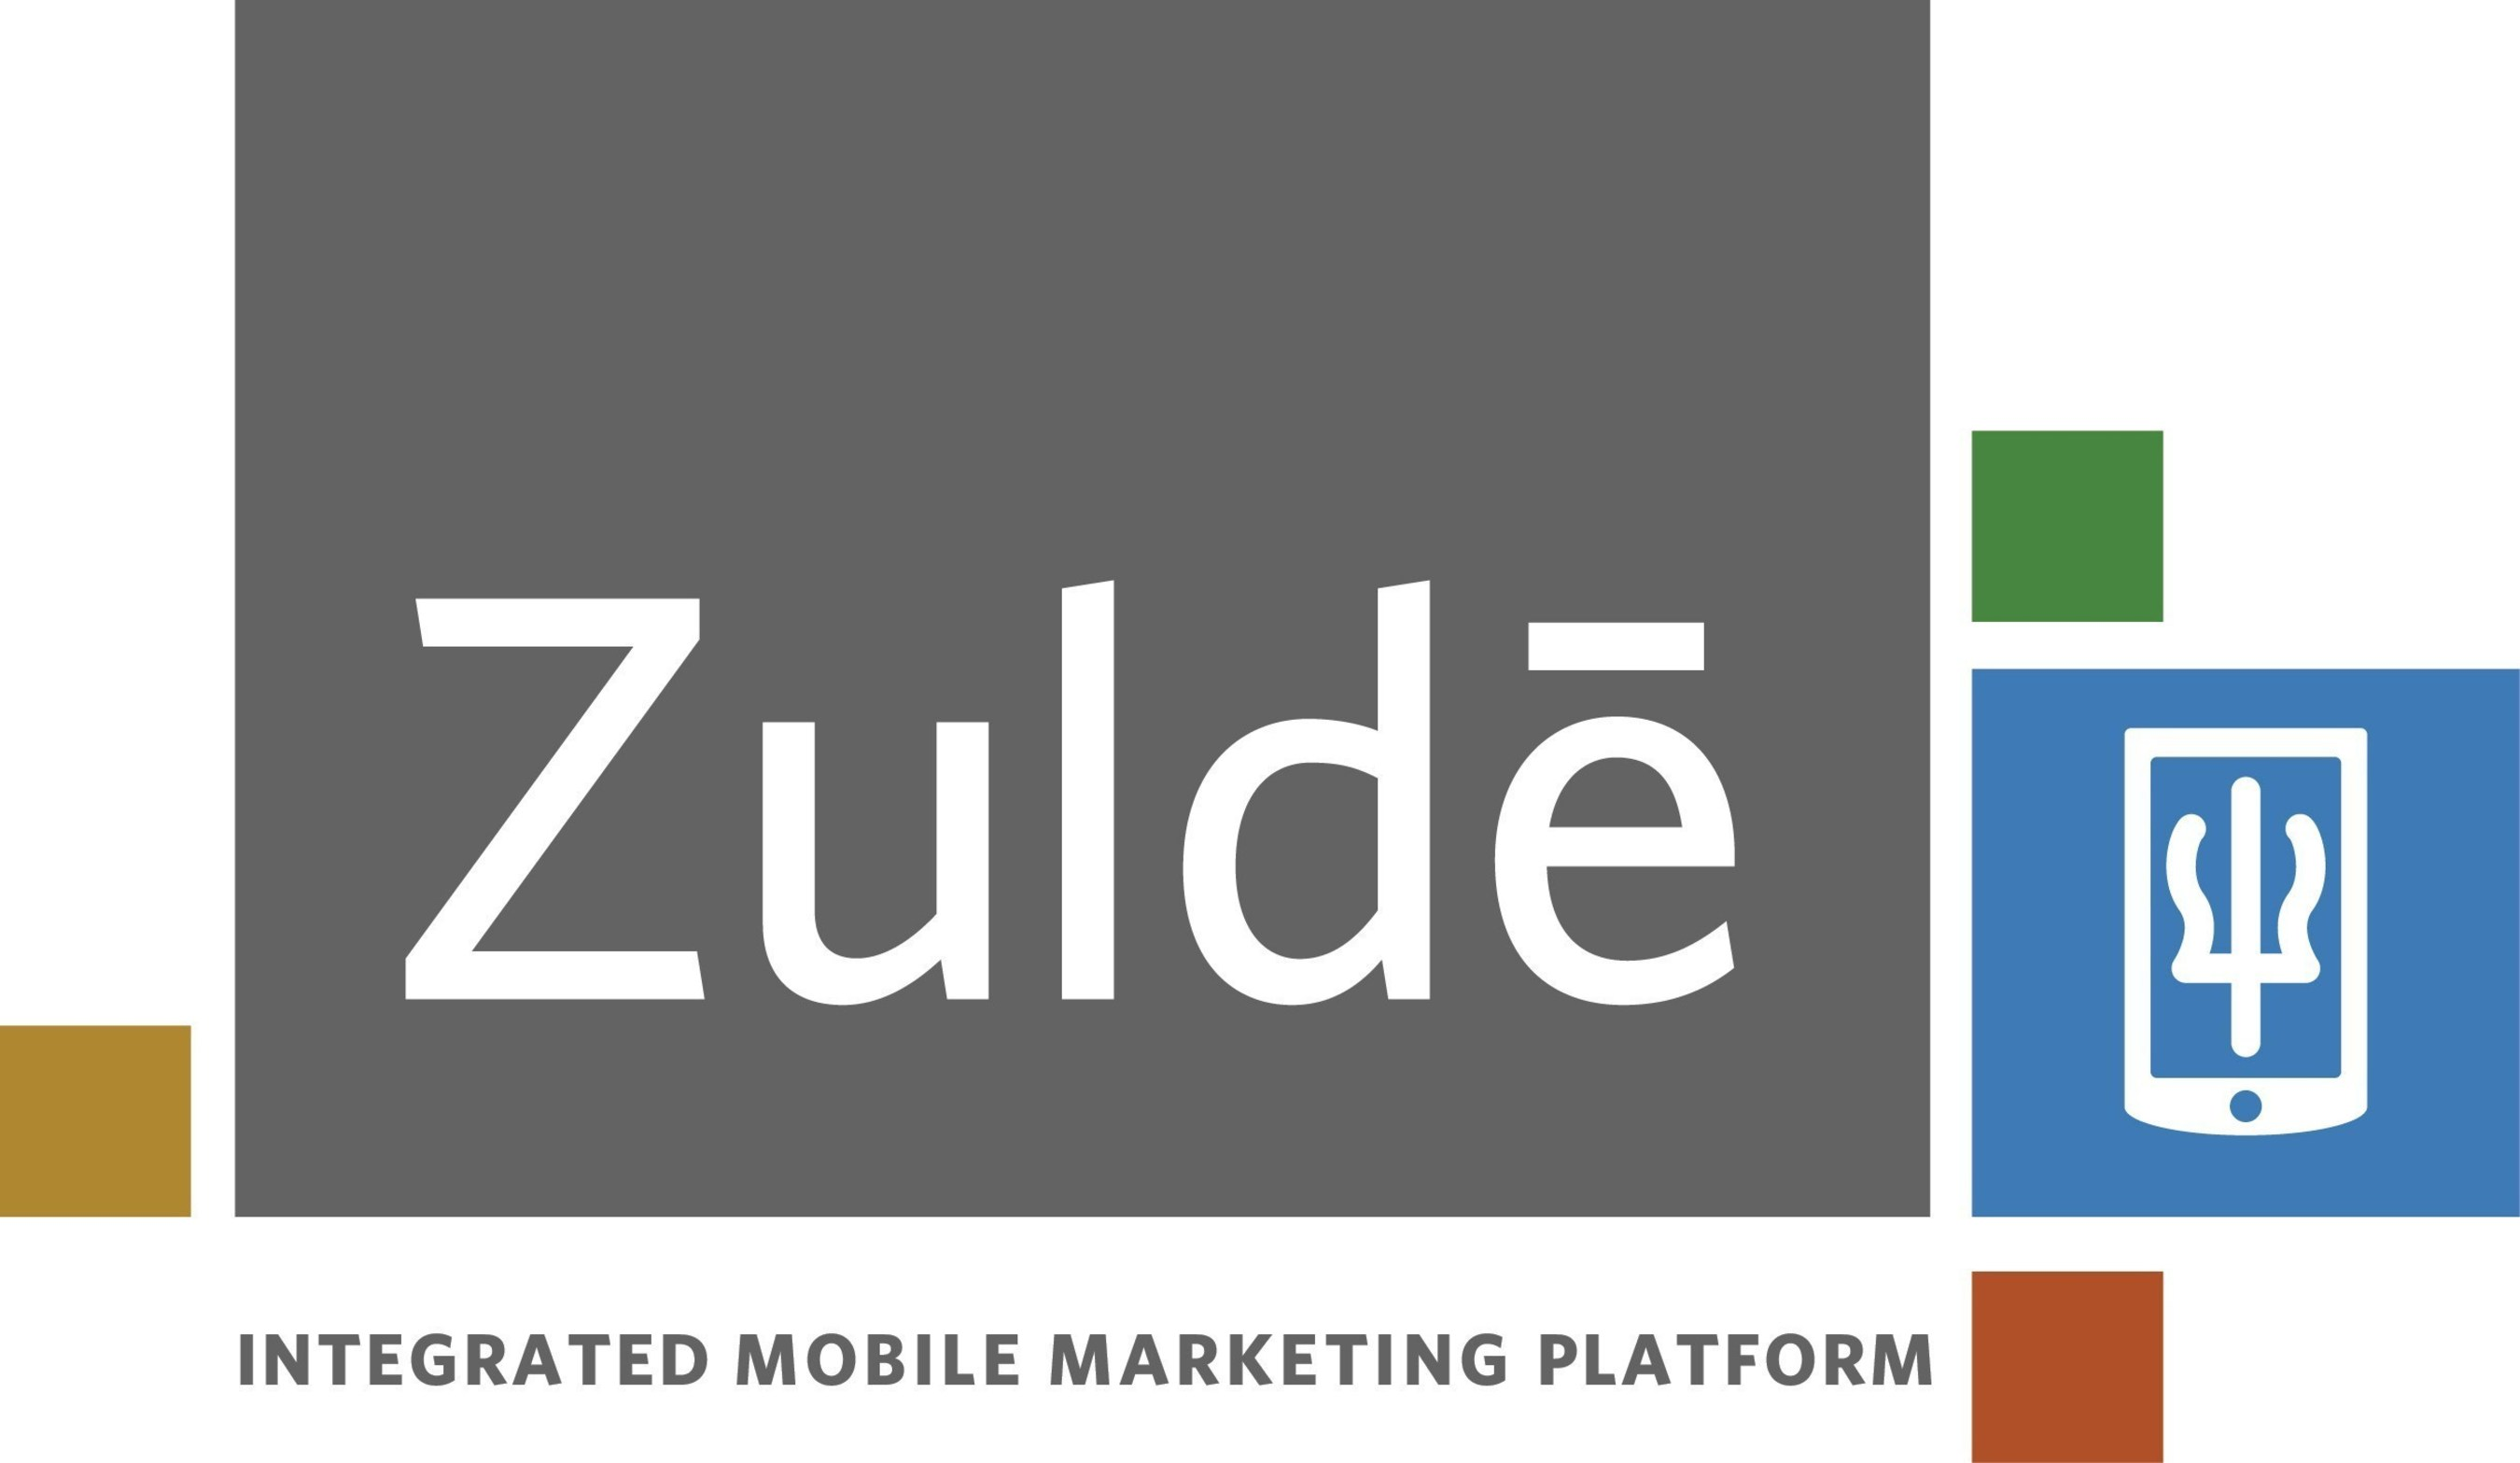 Zulde Selected as Best of Show at the National Restaurant Association Show